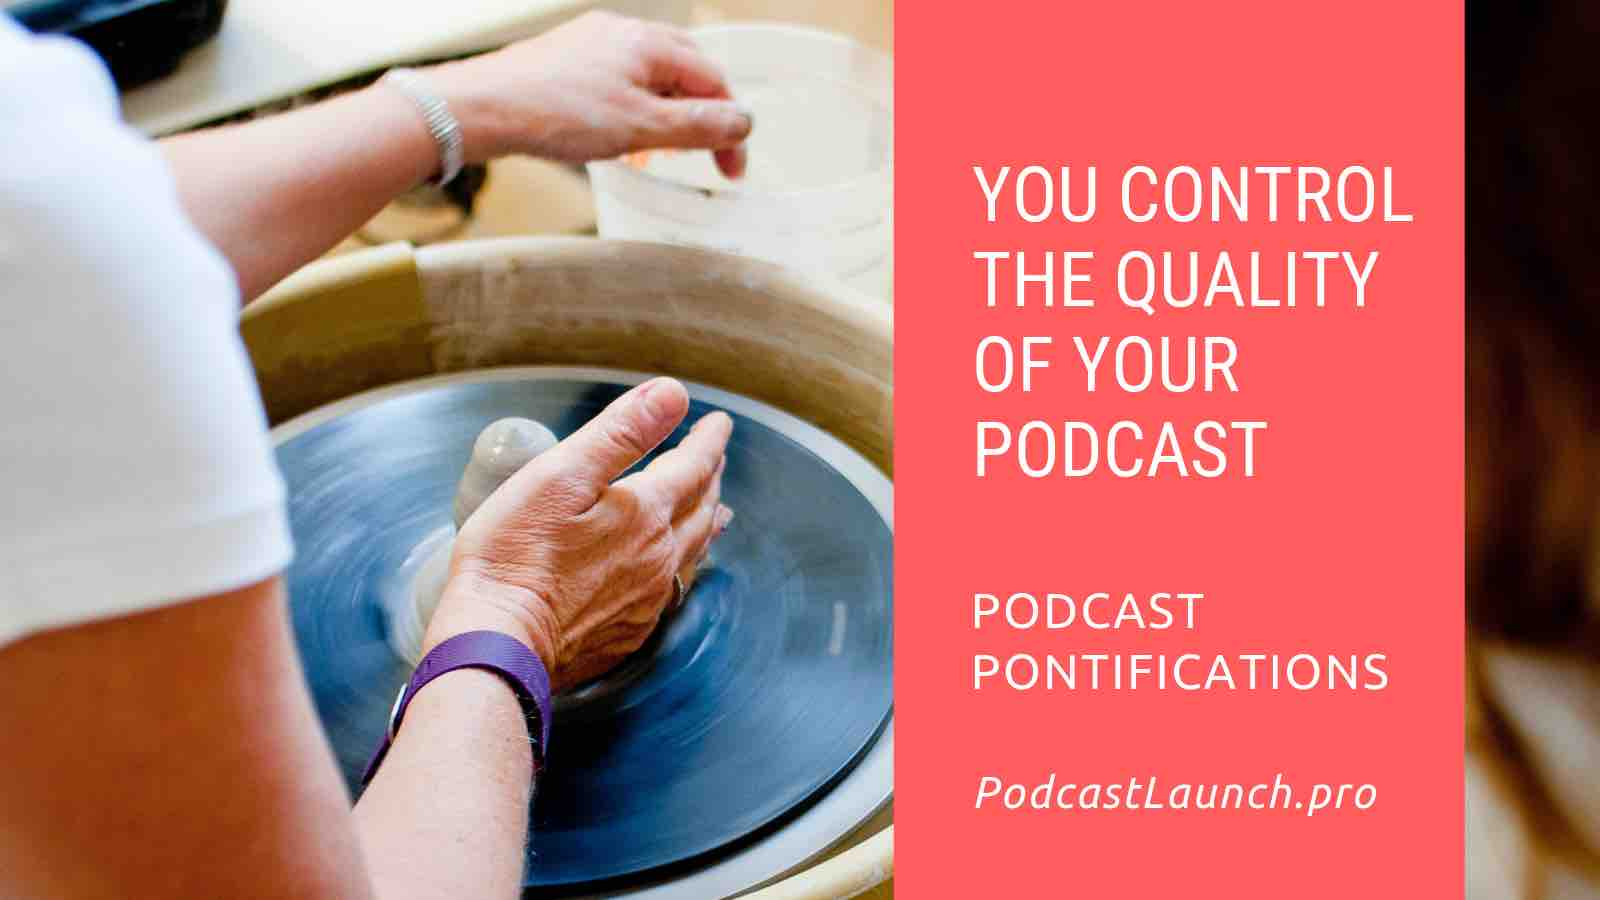 You Control The Quality Of Your Podcast